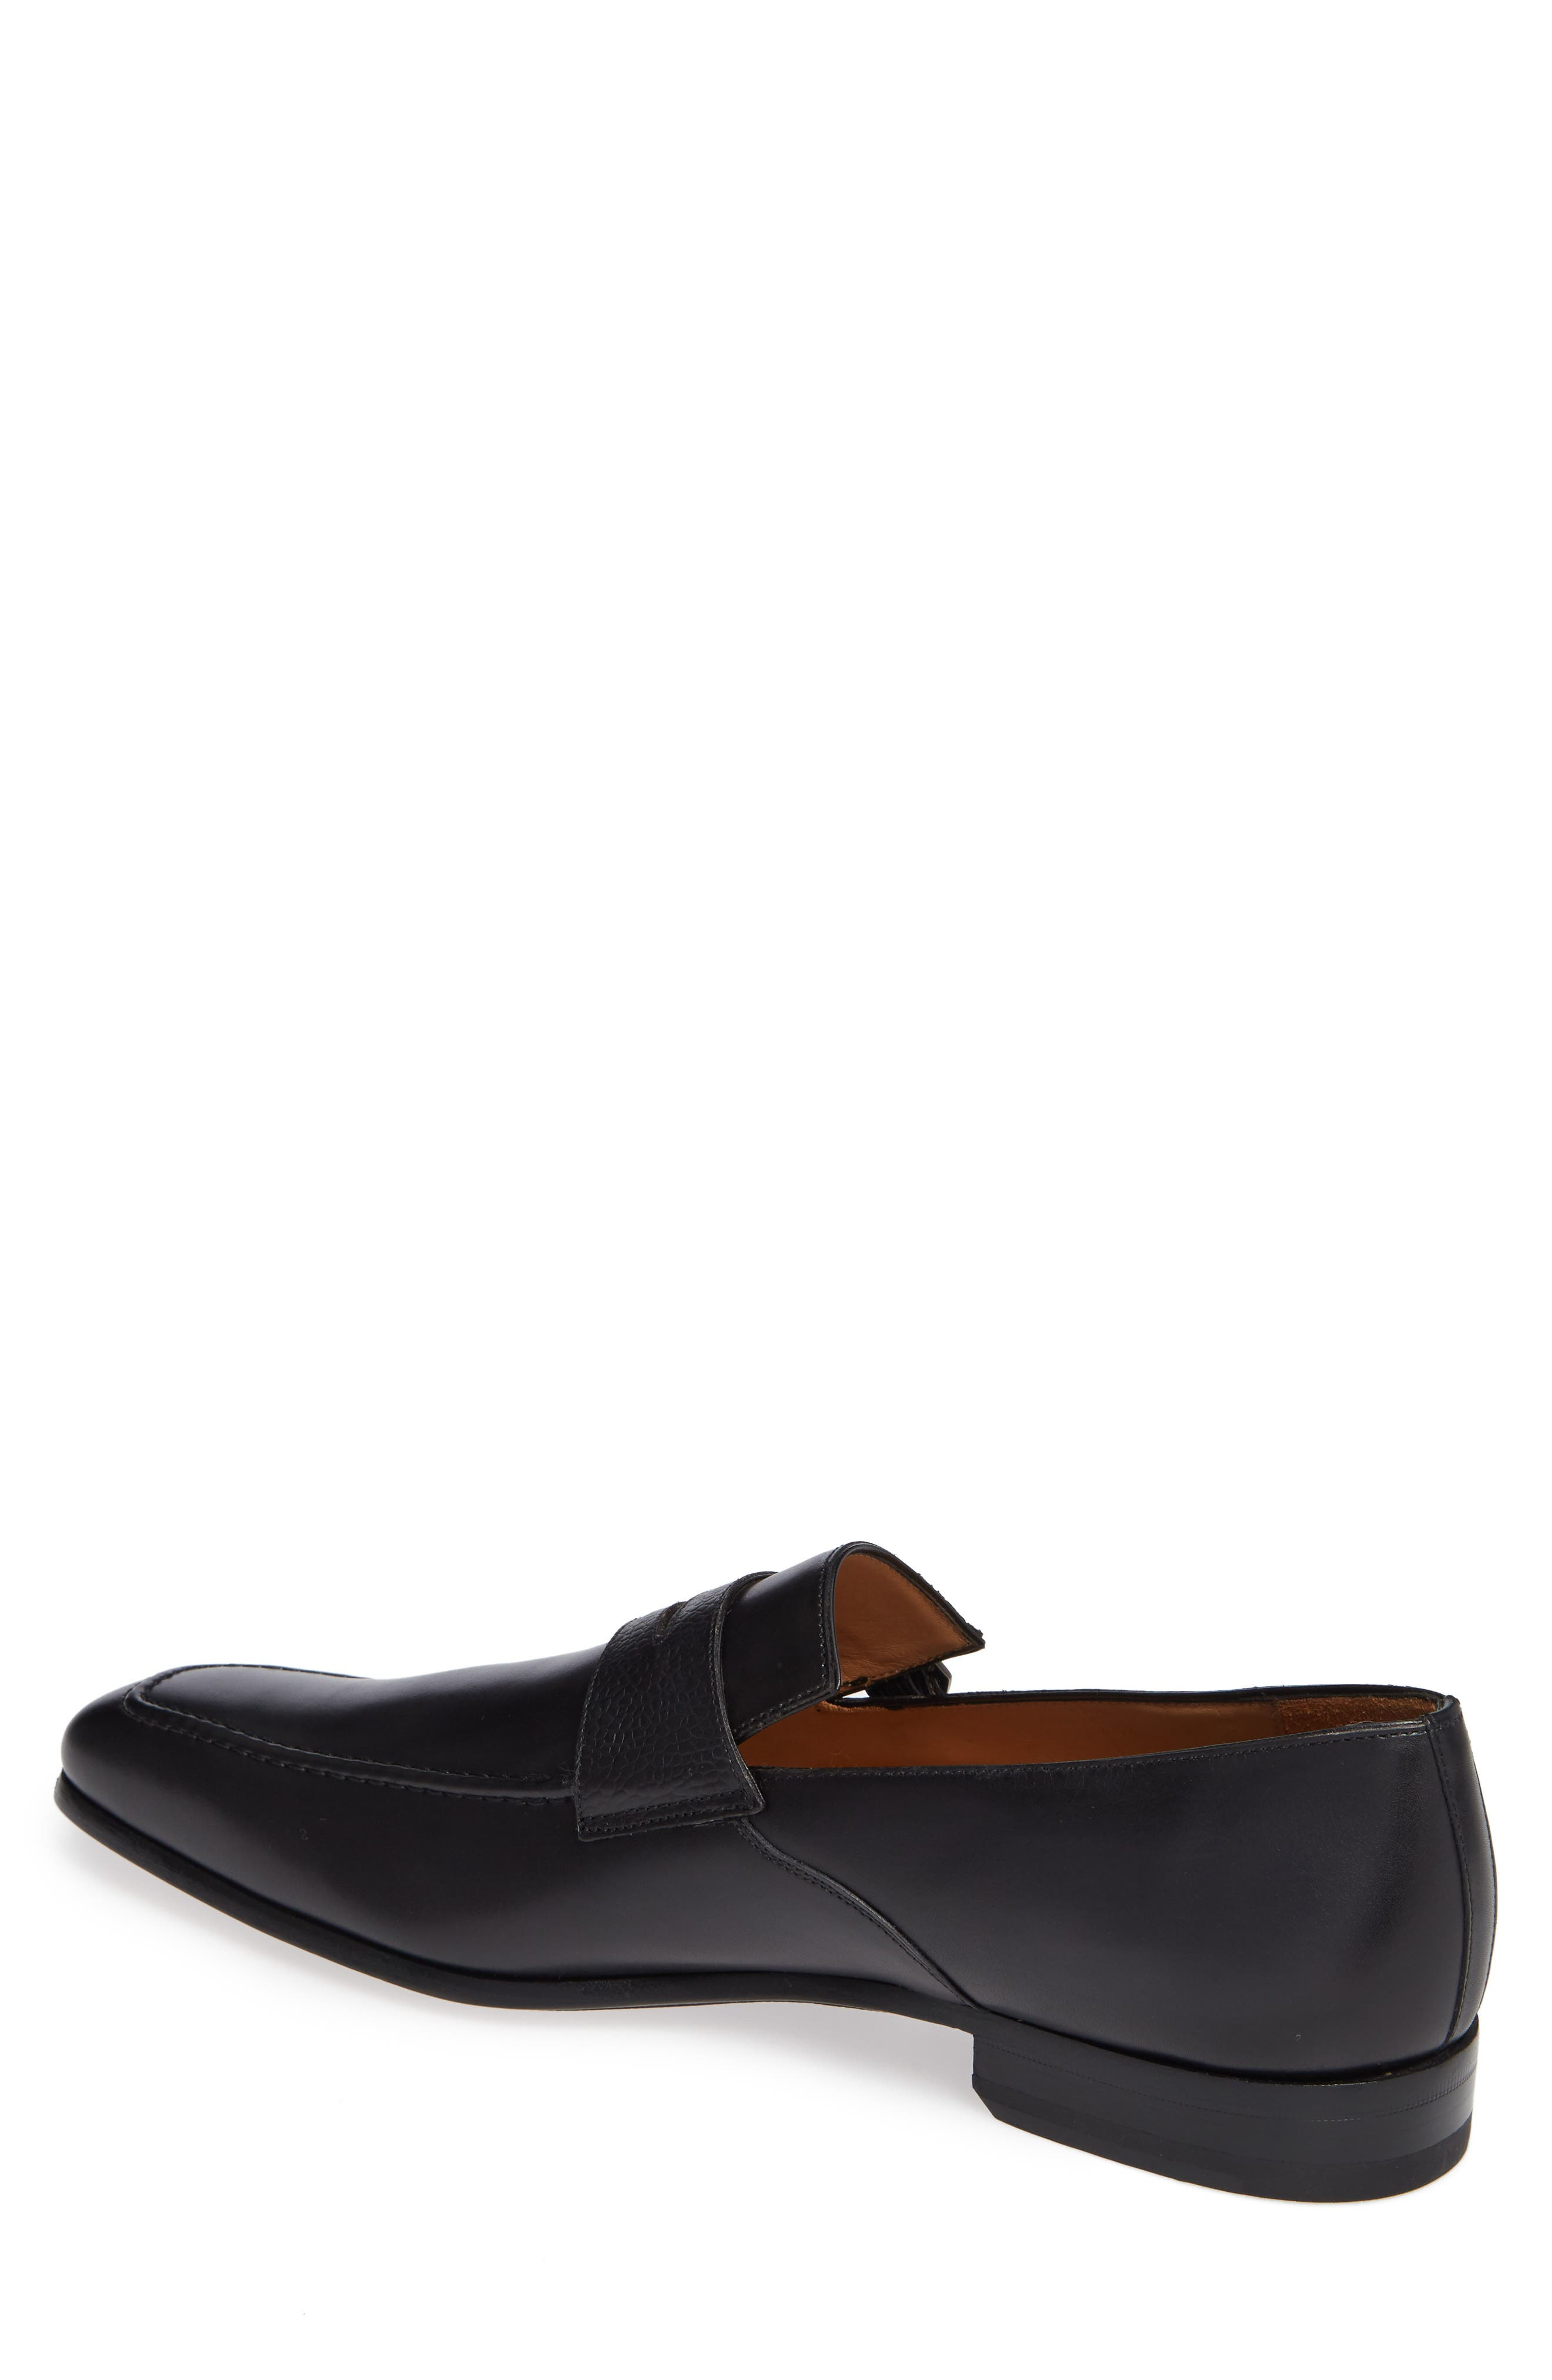 Callas Double Buckle Loafer,                             Alternate thumbnail 2, color,                             BLACK LEATHER